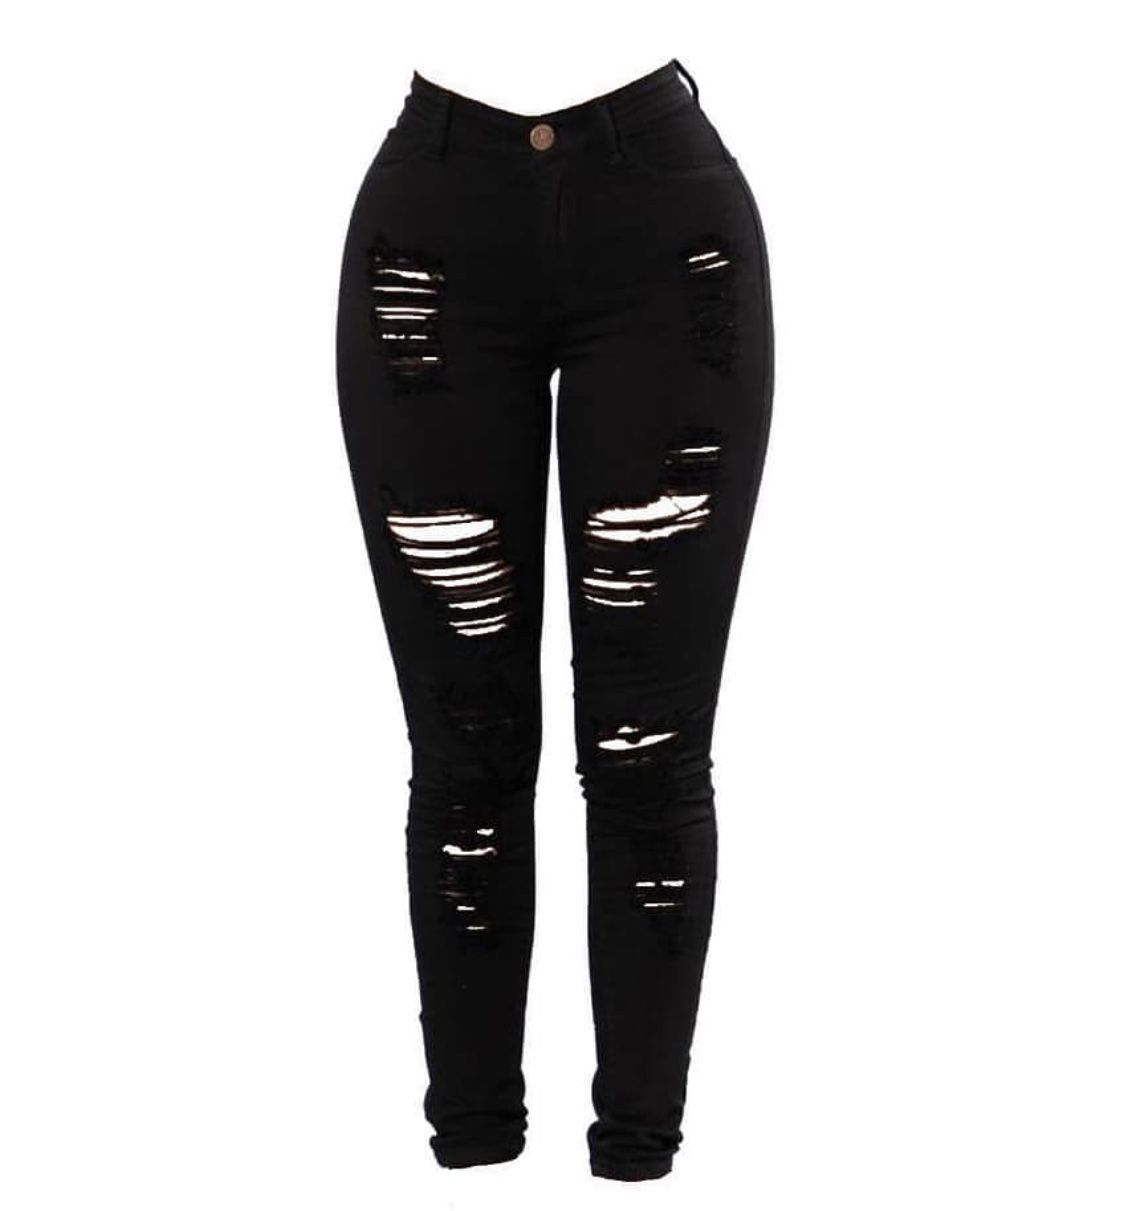 Pin By Daisyqueenofflowers On Pngs Diy Ripped Jeans Black Ripped Jeans Ripped Jeans